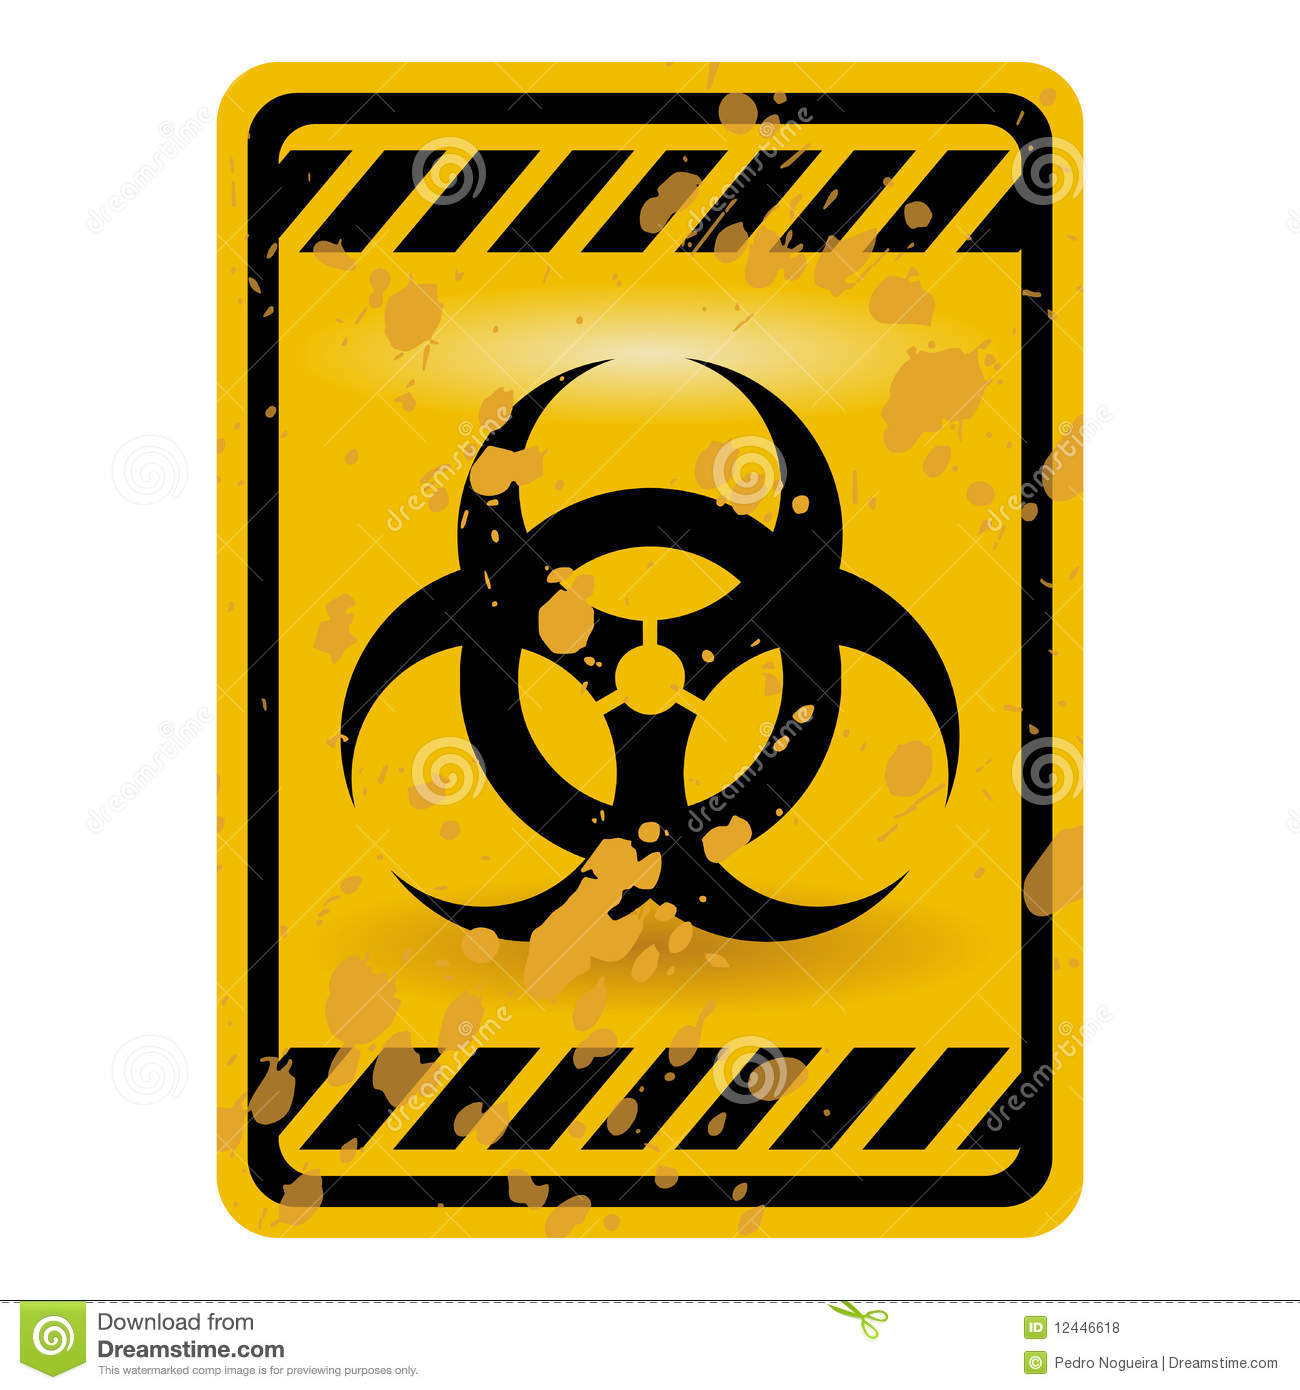 Biohazard sign stock vector illustration of hazard isolation biohazard sign biocorpaavc Image collections